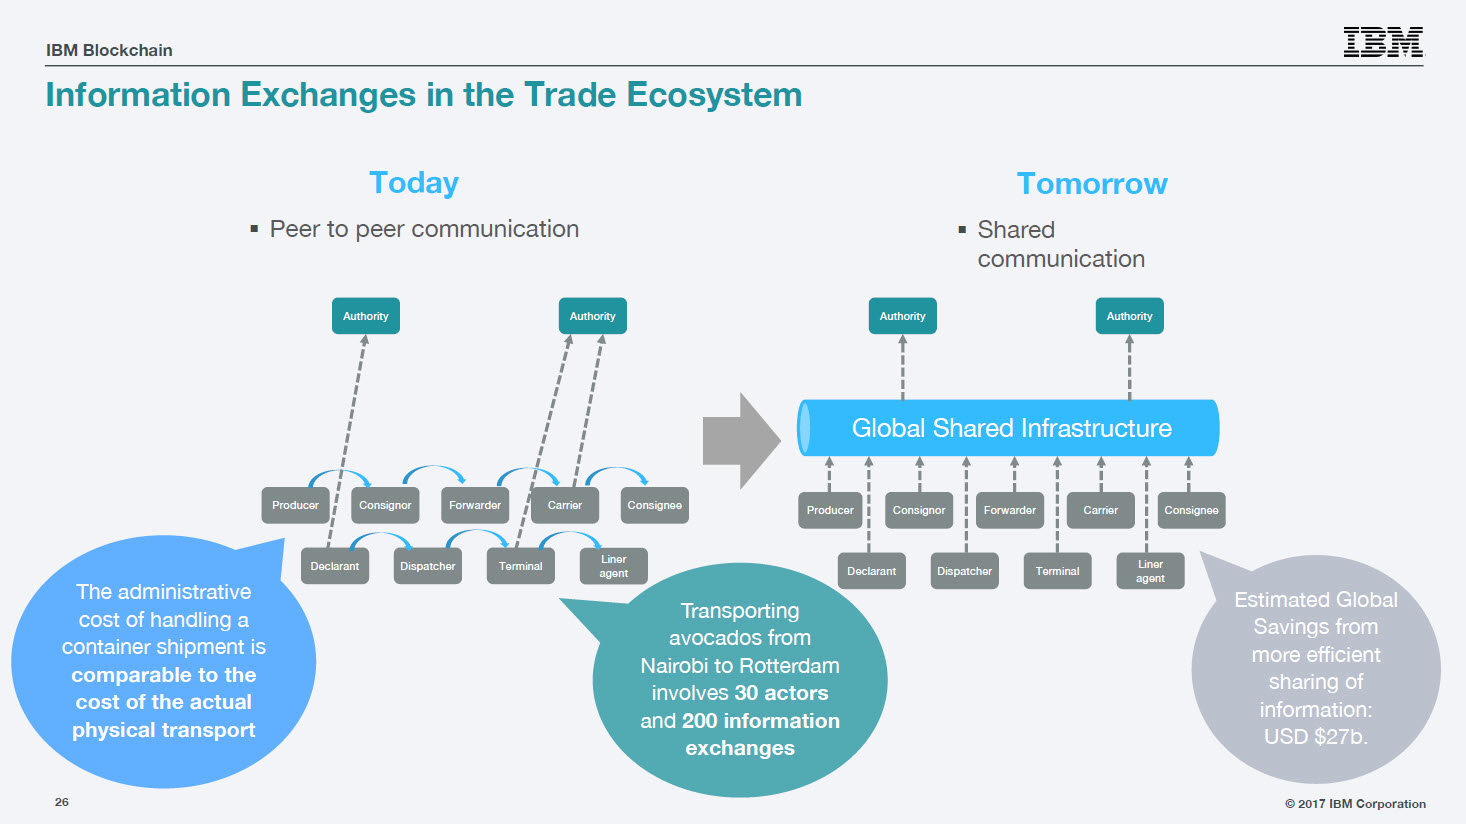 Hyperledger IBM Blockchain Trade information exchanges